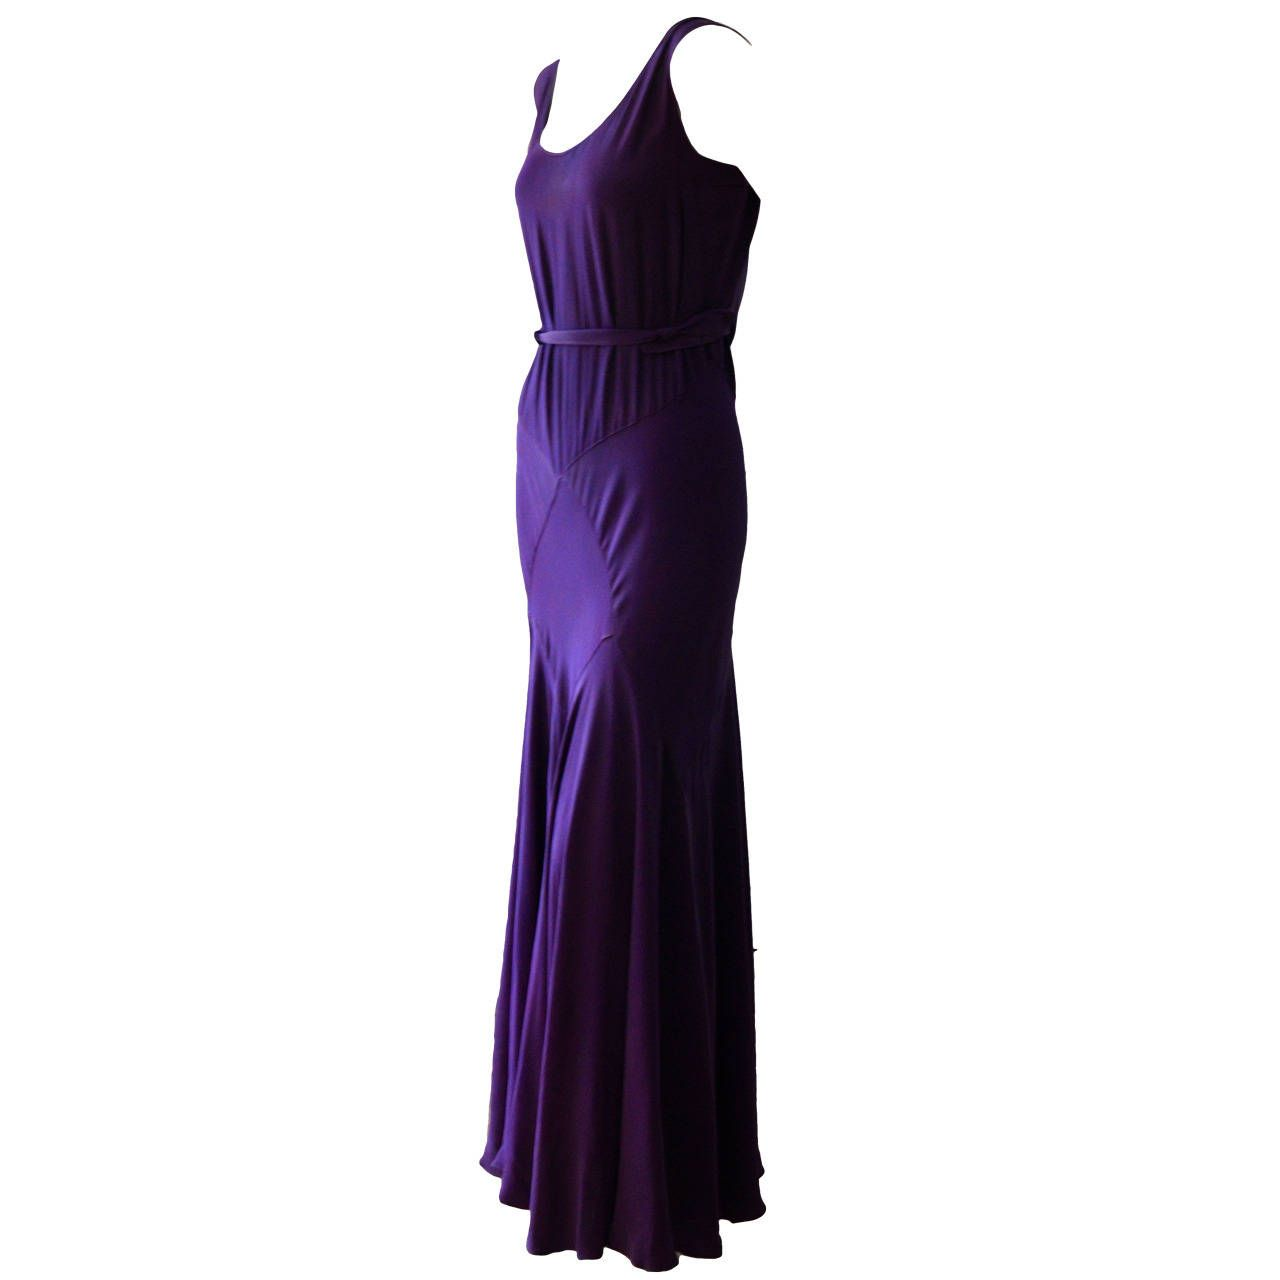 1930s bias cut purple crepe evening dress 1930s crpes and 1930s for sale on elegant purple biais cut 1930 cocktail dress very faint small stain to front and back of bodice but barely noticeable small l shaped darn to ombrellifo Image collections